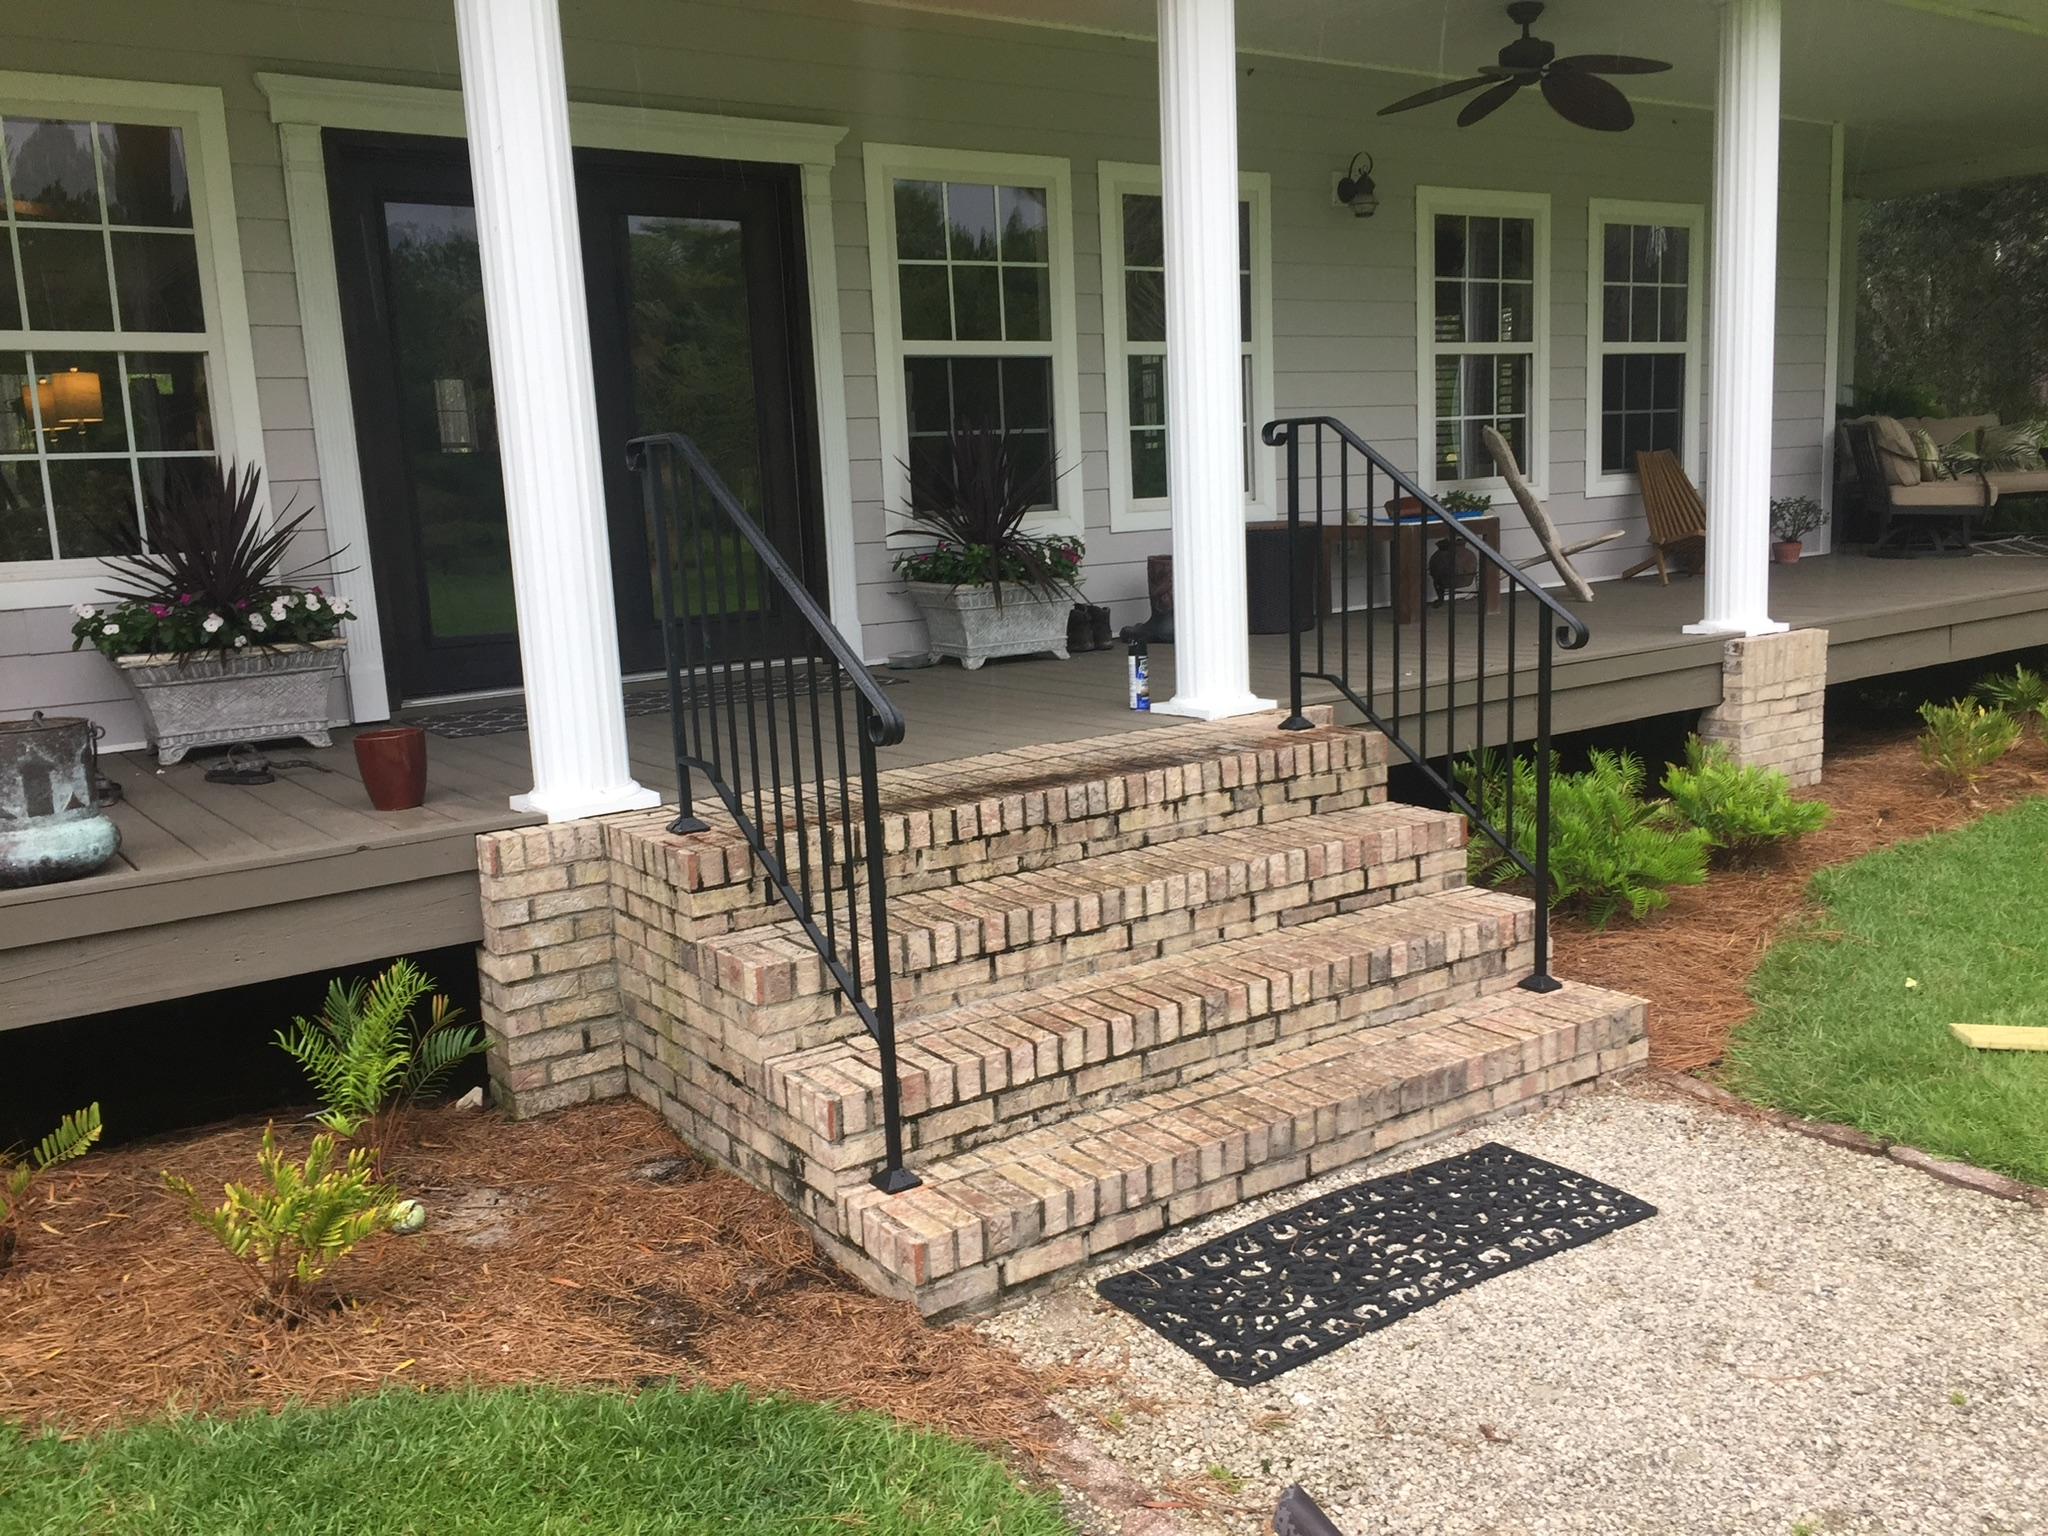 Shop Diy Wrought Iron Handrail Handrails For Indoor Outdoor Steps | Diy Handrails For Outdoor Stairs | Wood | Front Porch Railing Ideas | Porch | Stair Stringers | Pipe